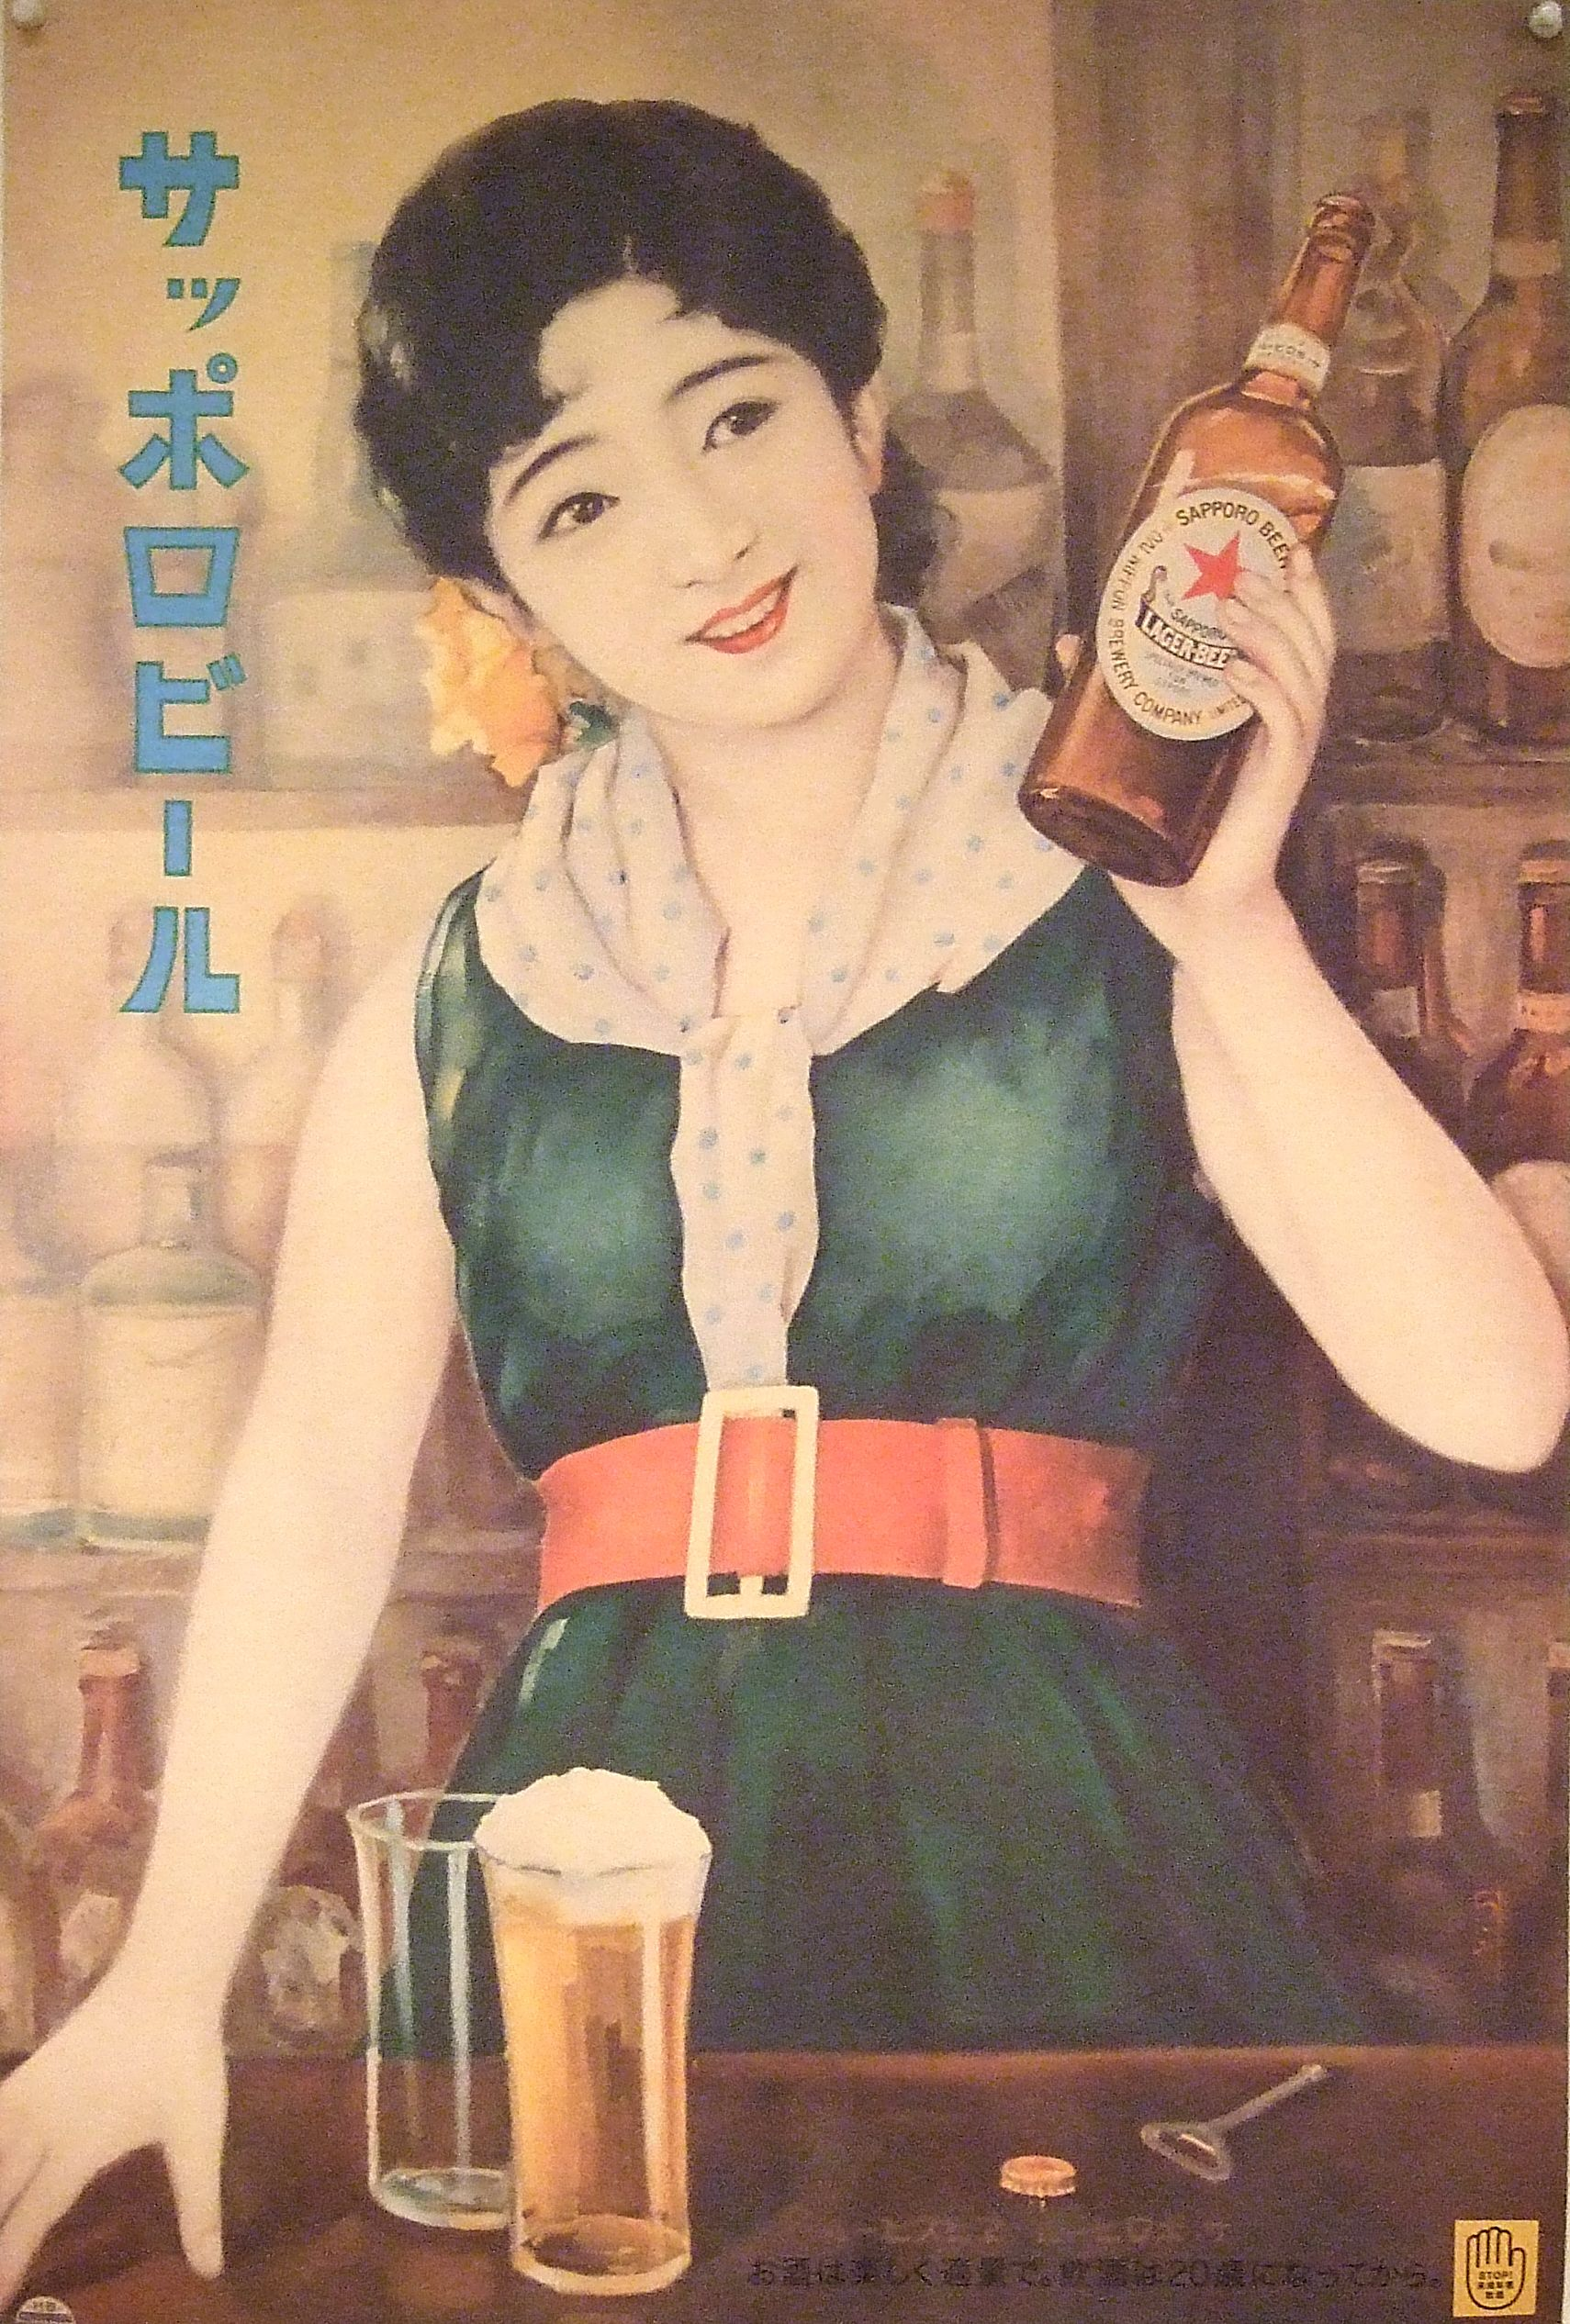 Curiously vintage japanese beer ads topic has